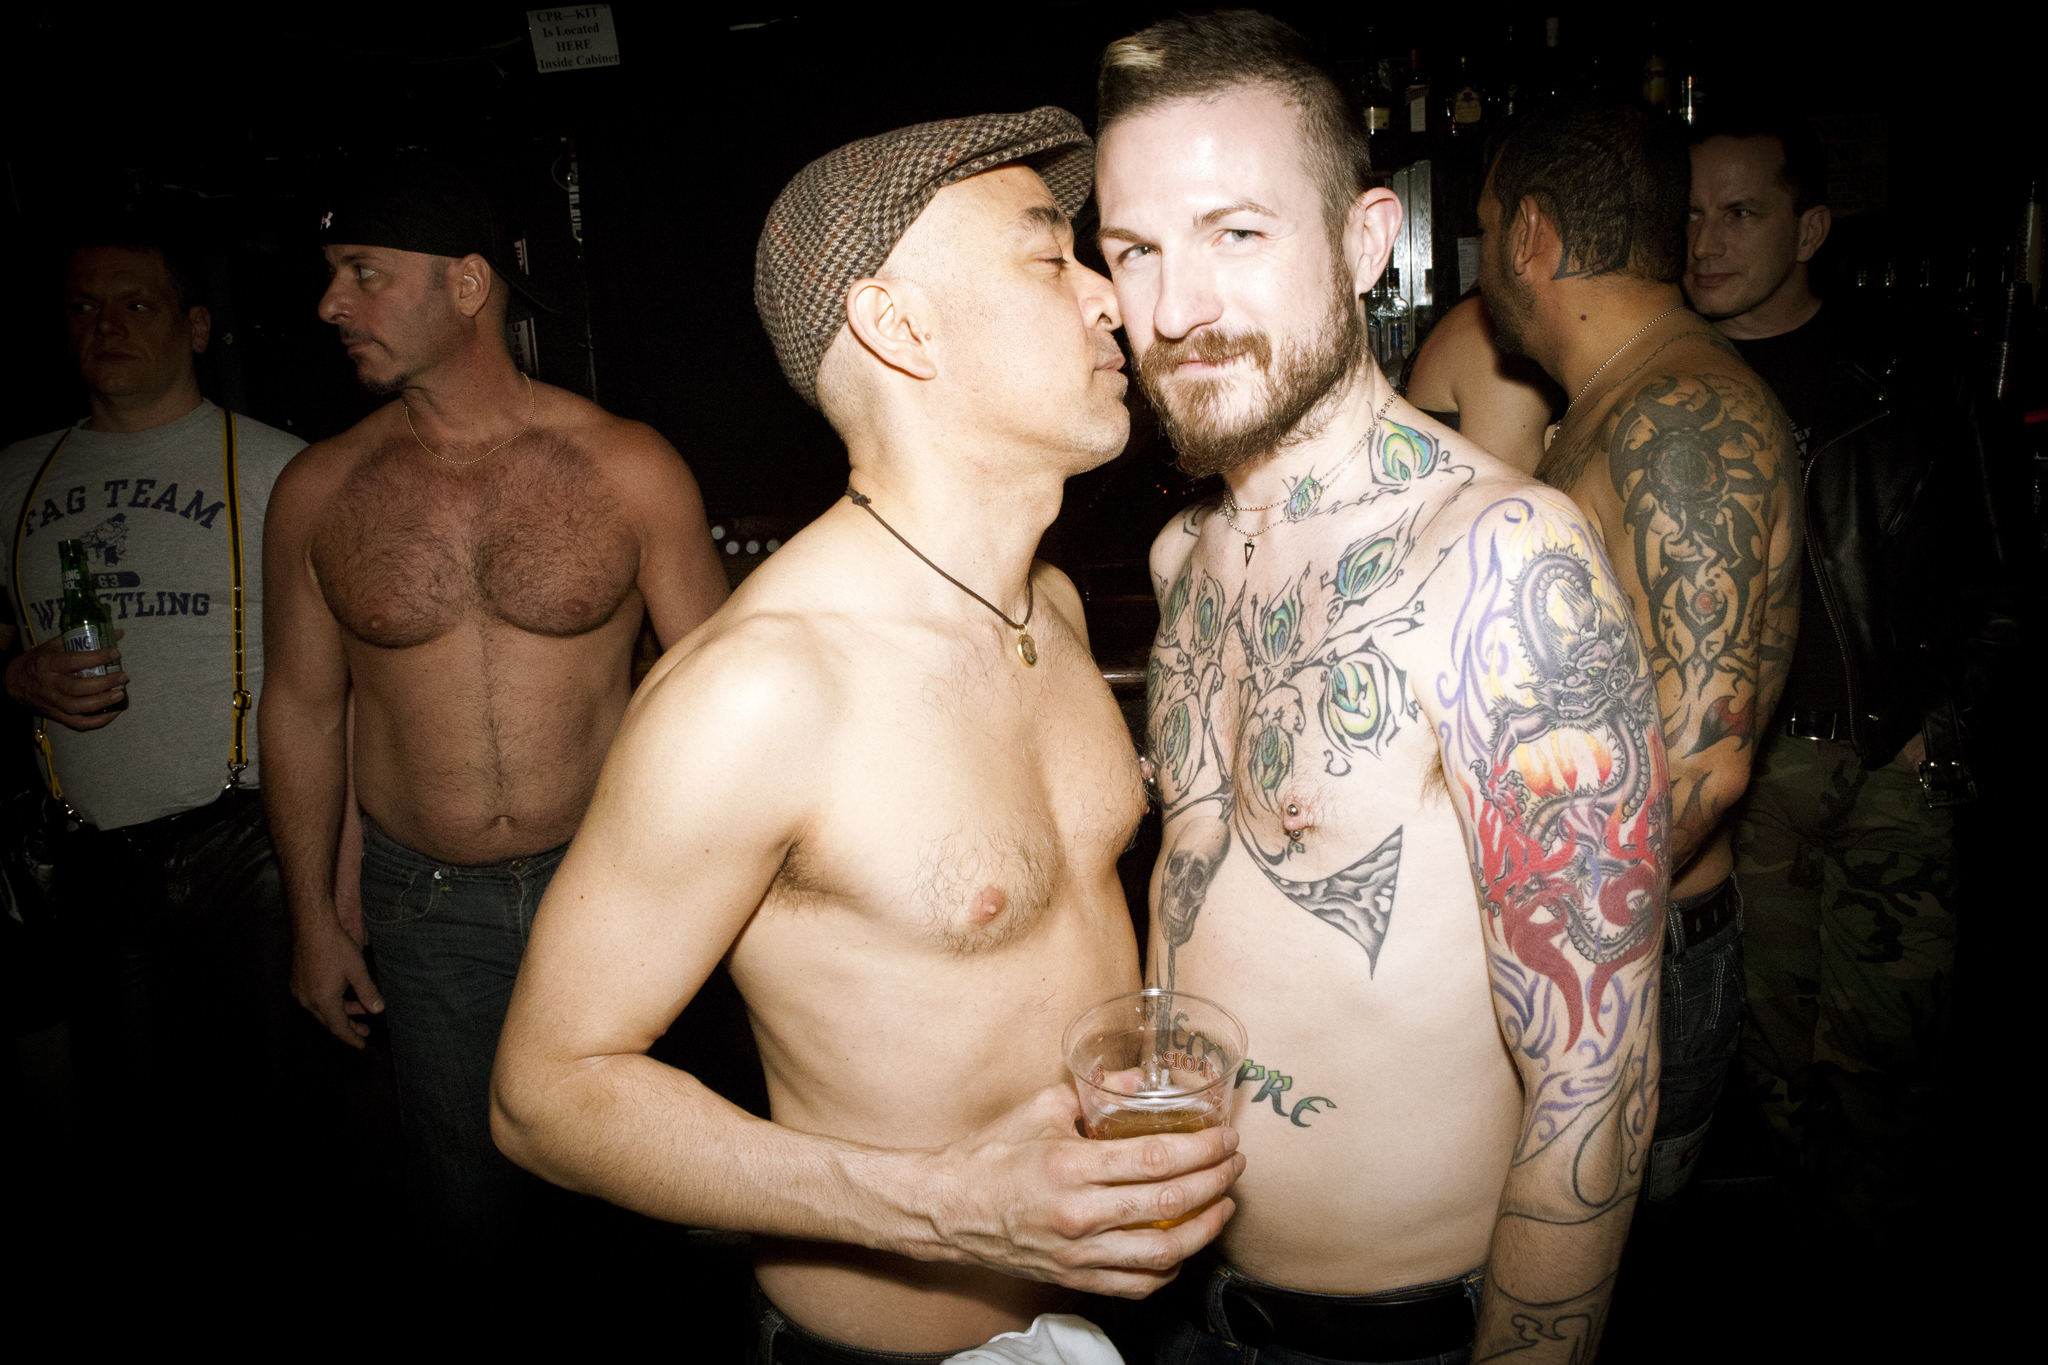 Gay sex clubs in manhatten